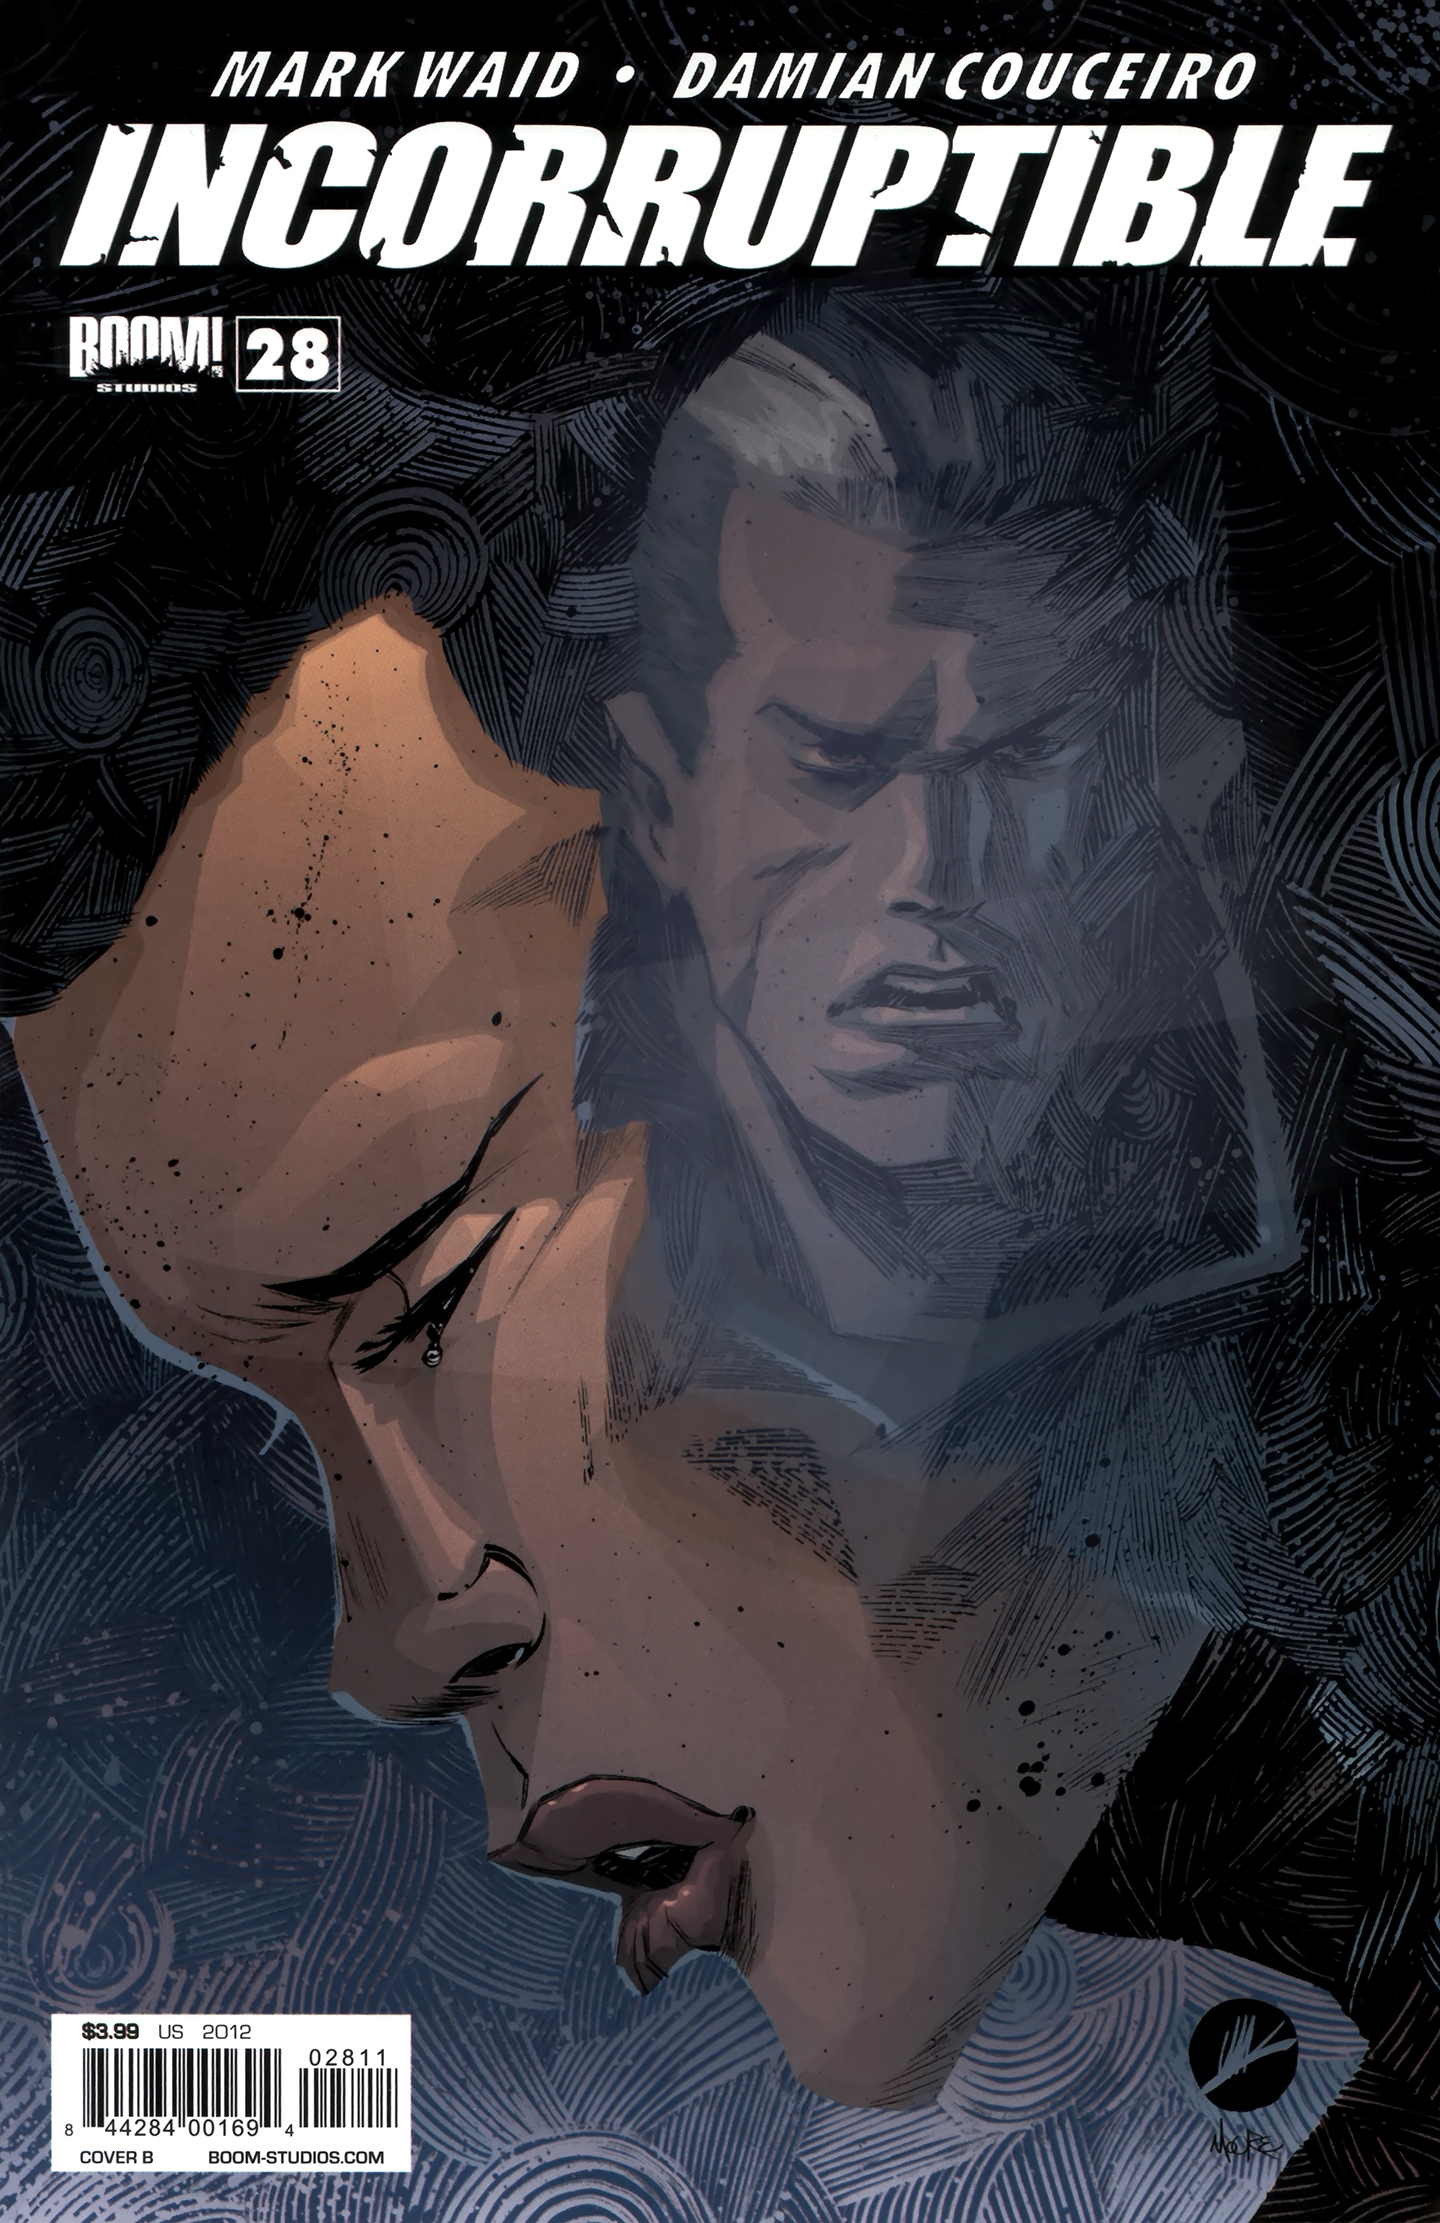 Read online Incorruptible comic -  Issue #28 - 2